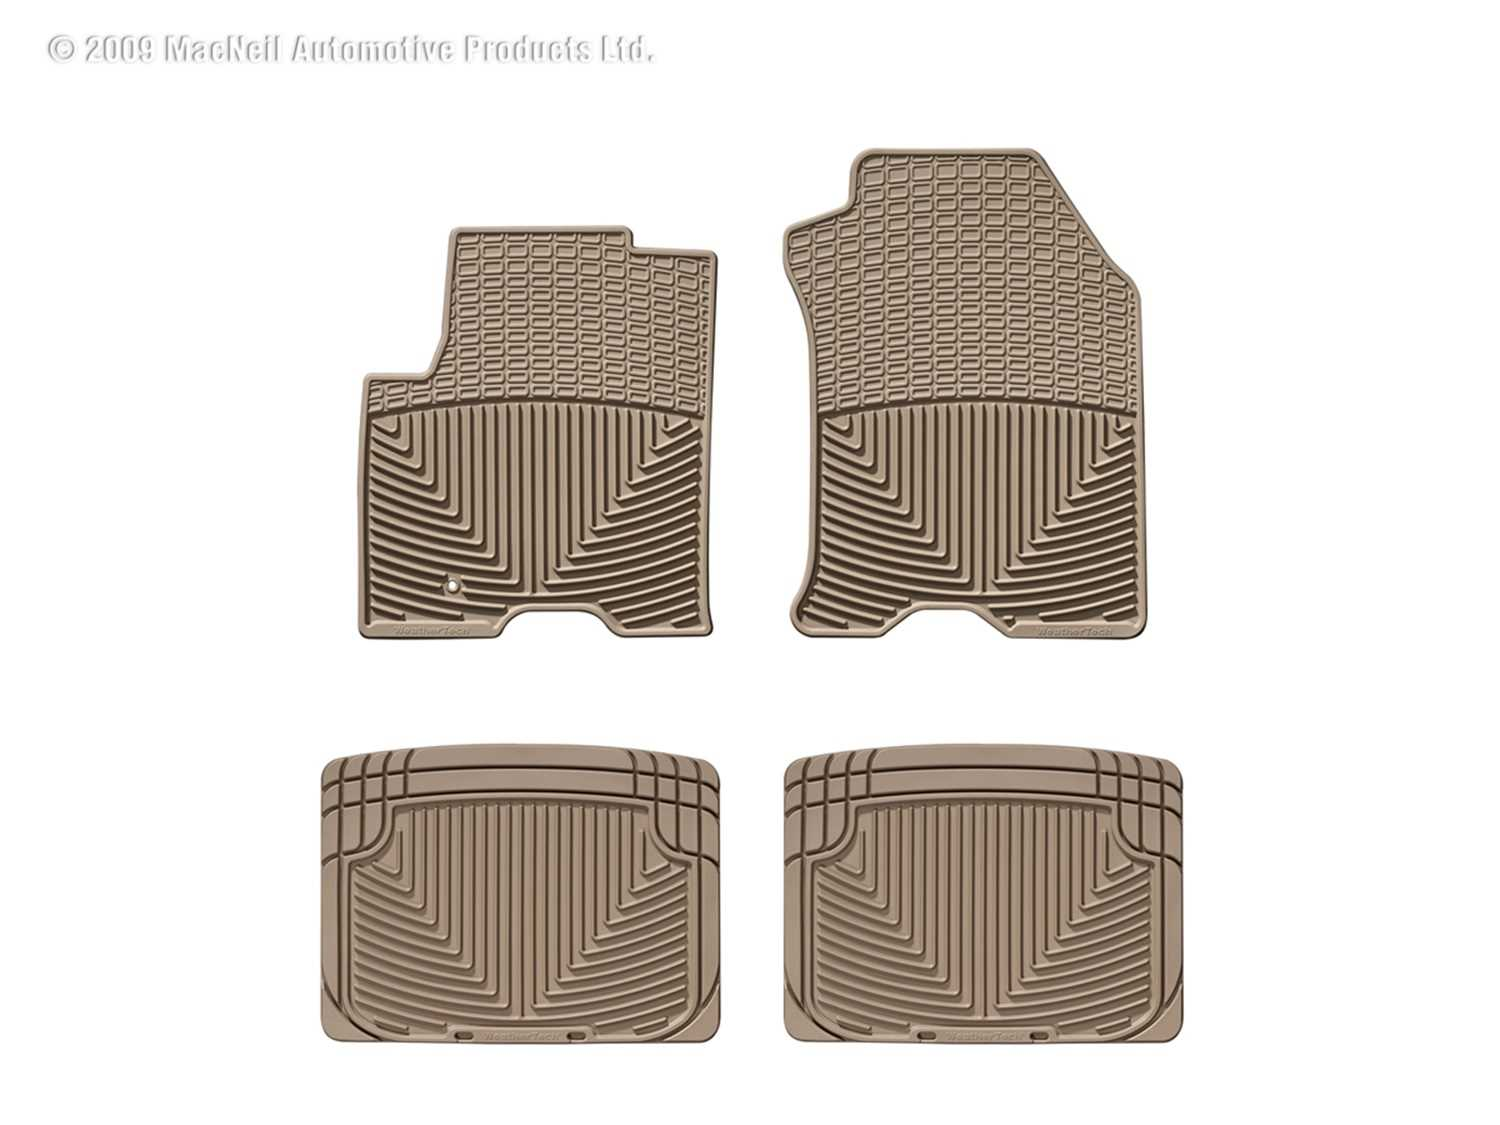 W98TN-W20TN WeatherTech All Weather Floor Mats